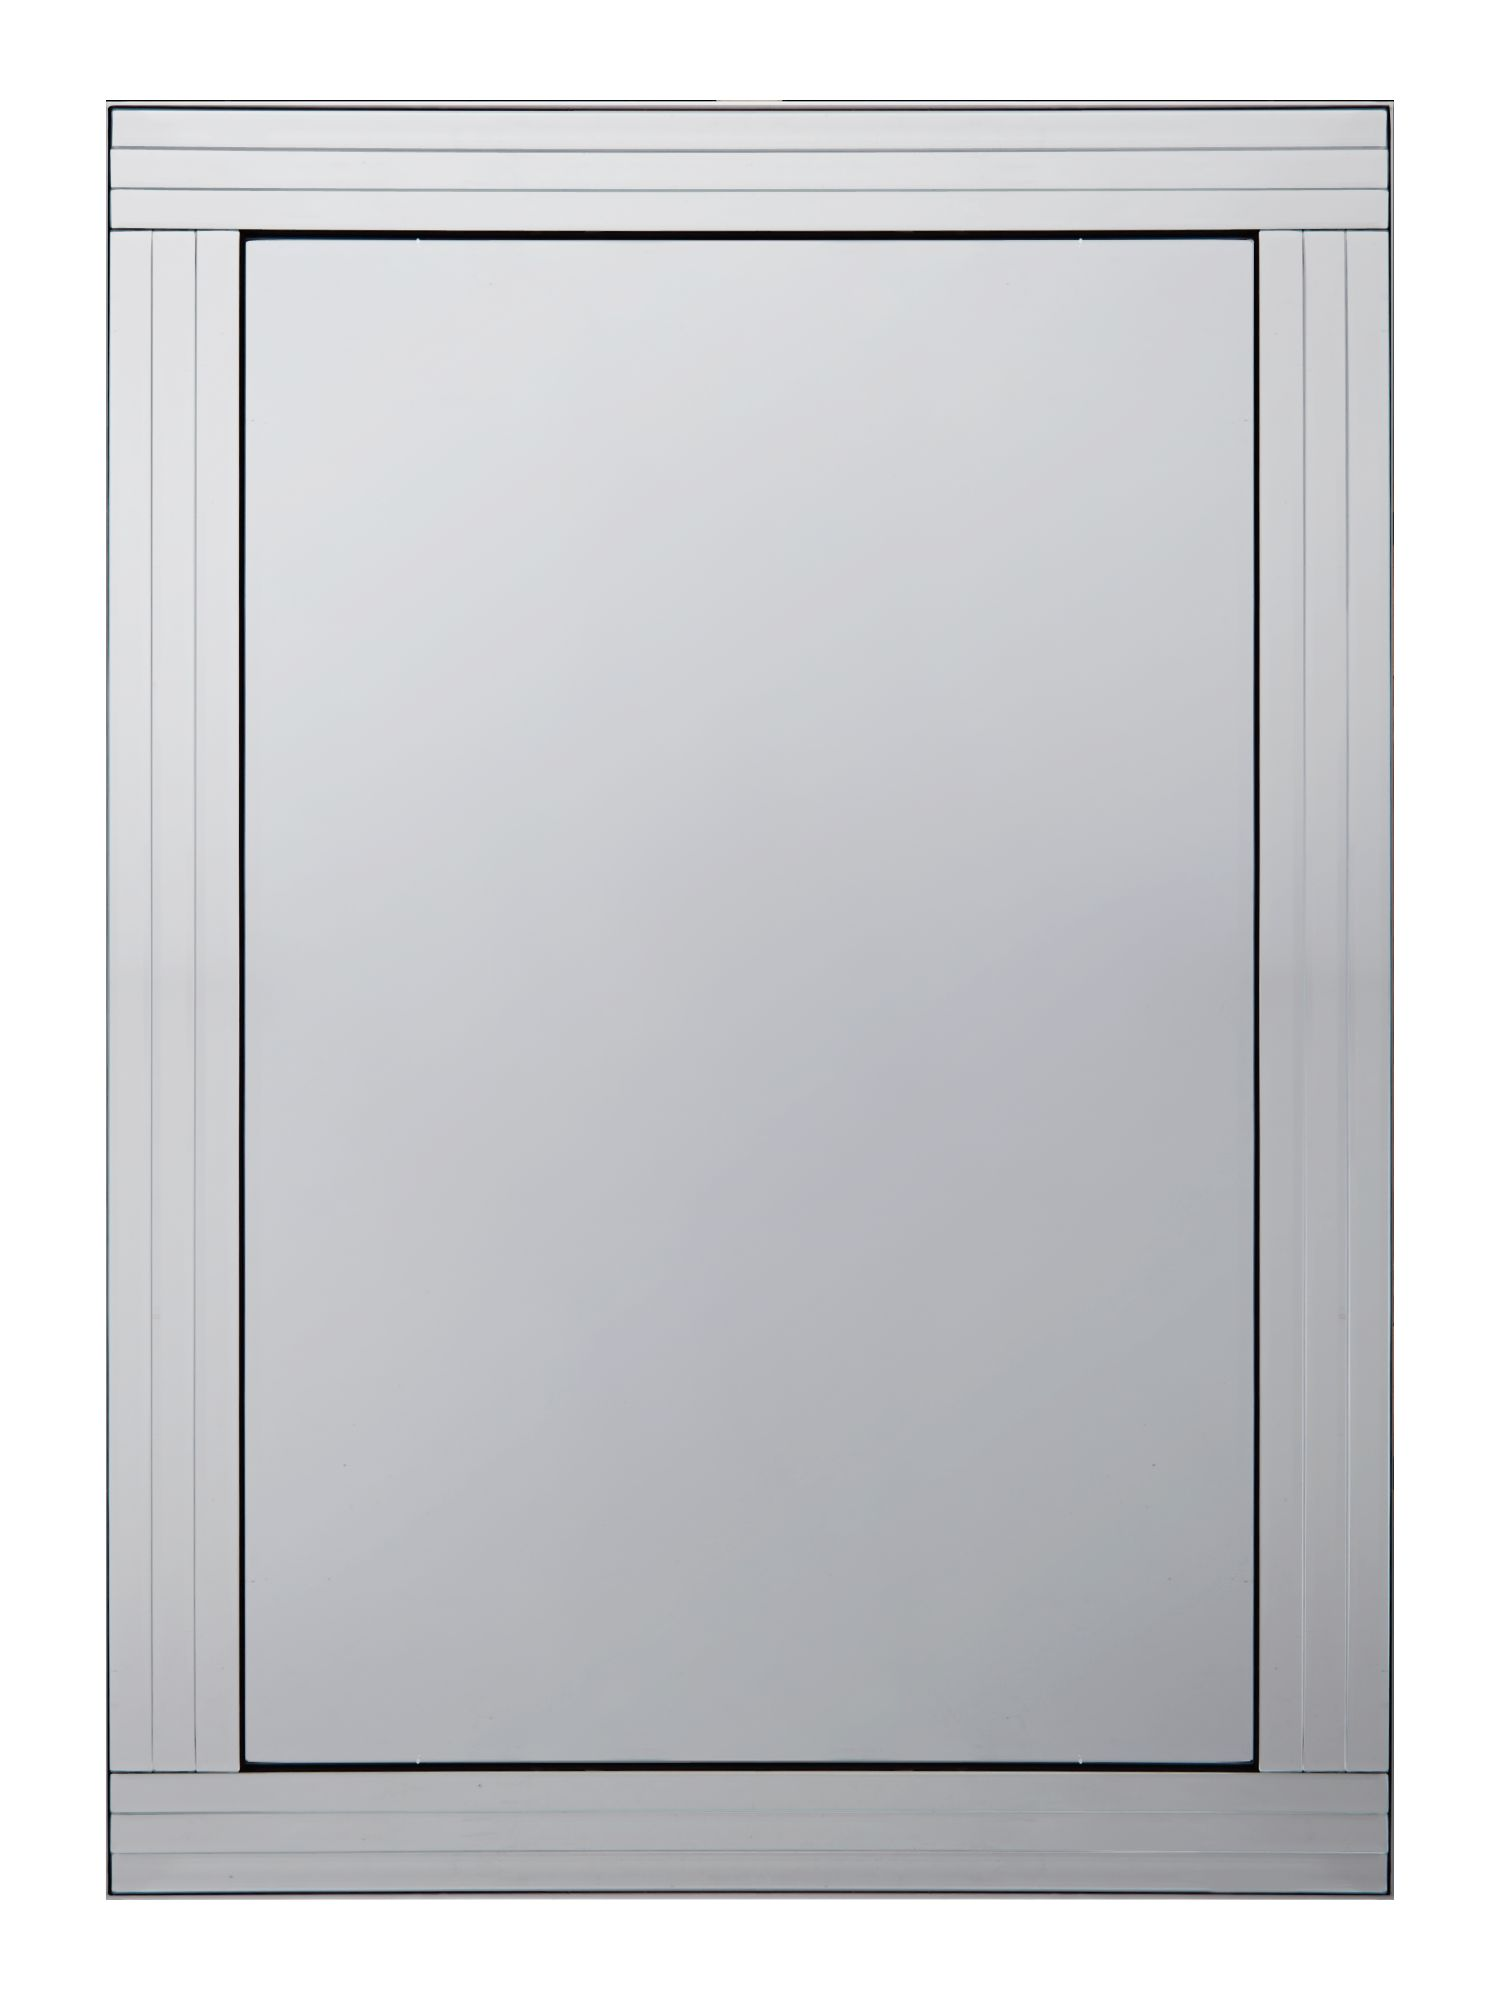 Triple bevel mirror 74cm x 105cm